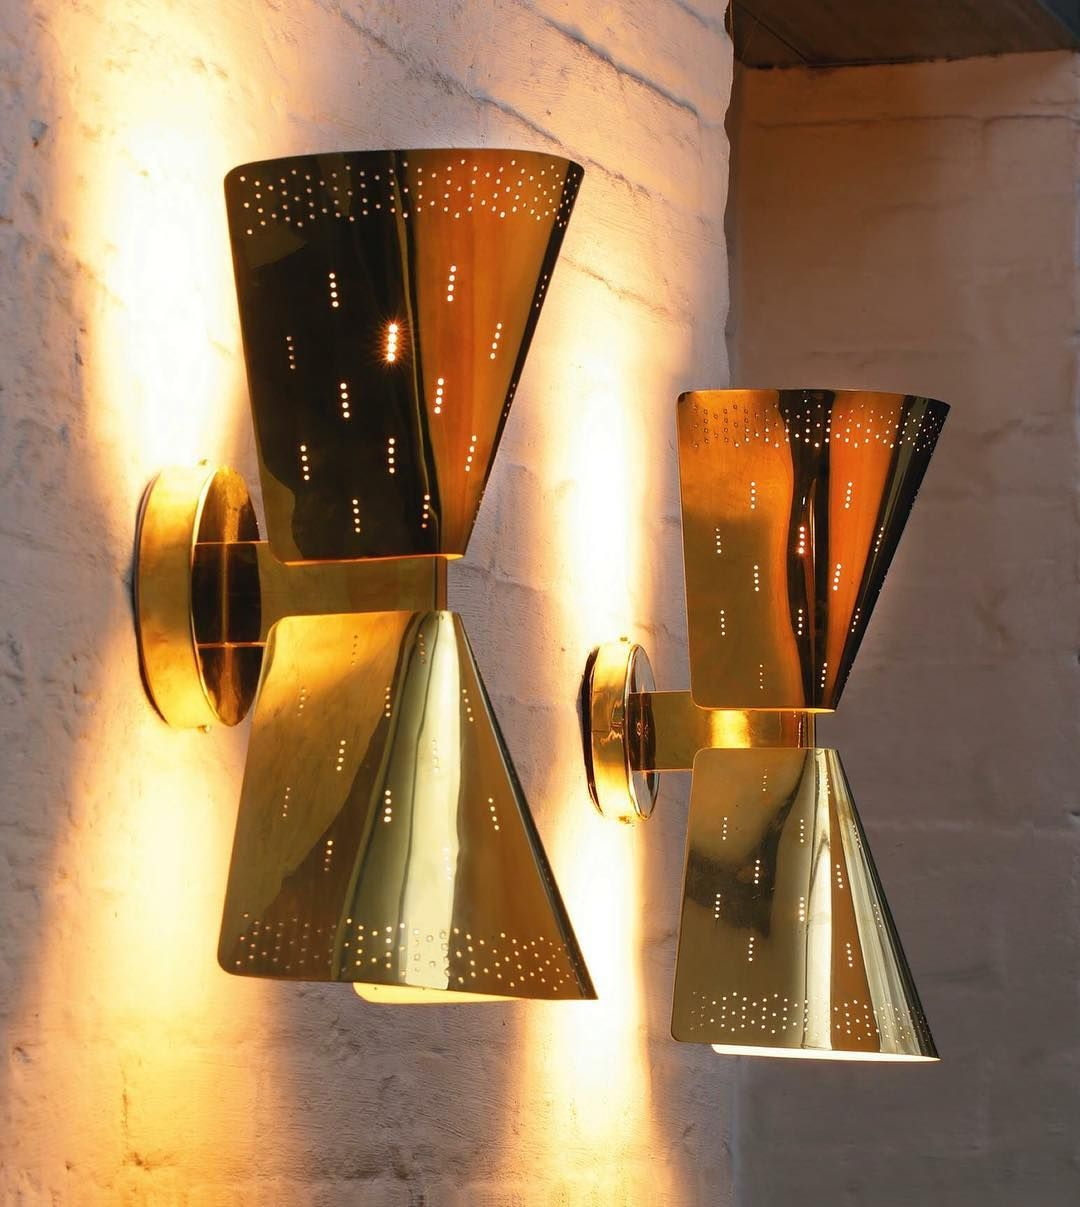 Brass sconces designed by Paavo Tynell for Taito Oy of Finland in the 1950's. Photo: Sothebys #mcmdaily #paavotynell #taitooy #finland mcmdaily.com